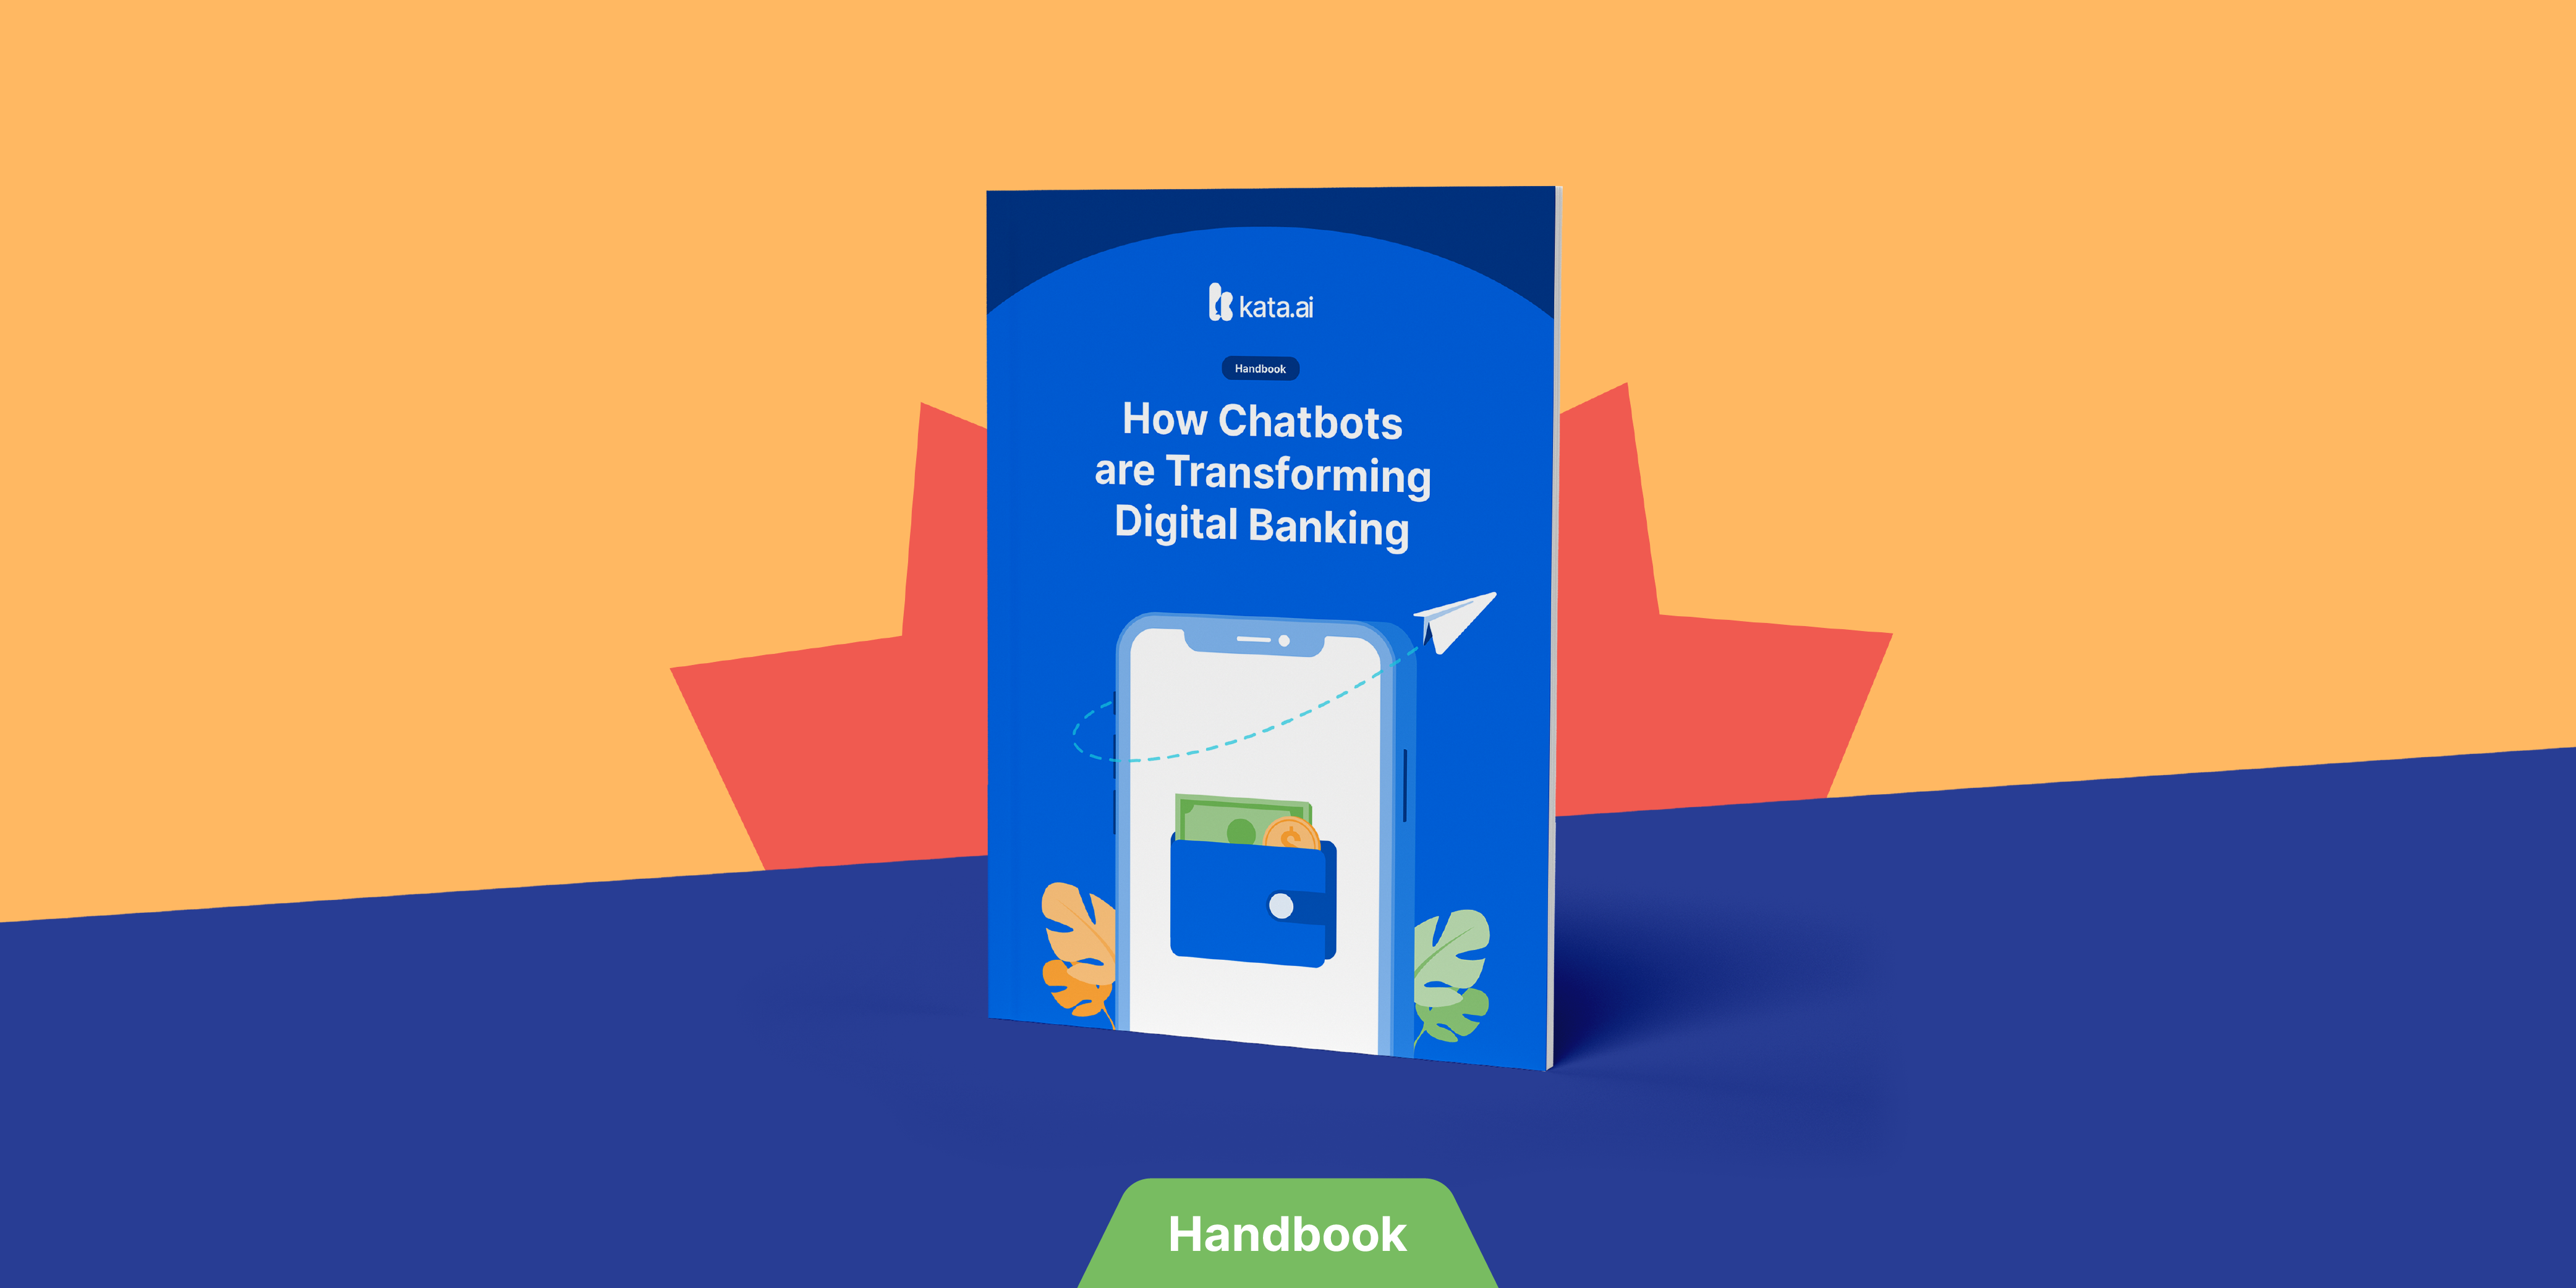 In Kata.ai's latest How Chatbots are Transforming Digital Banking handbook, we see how chatbots can help banks and financial service providers improve their digital experiences.